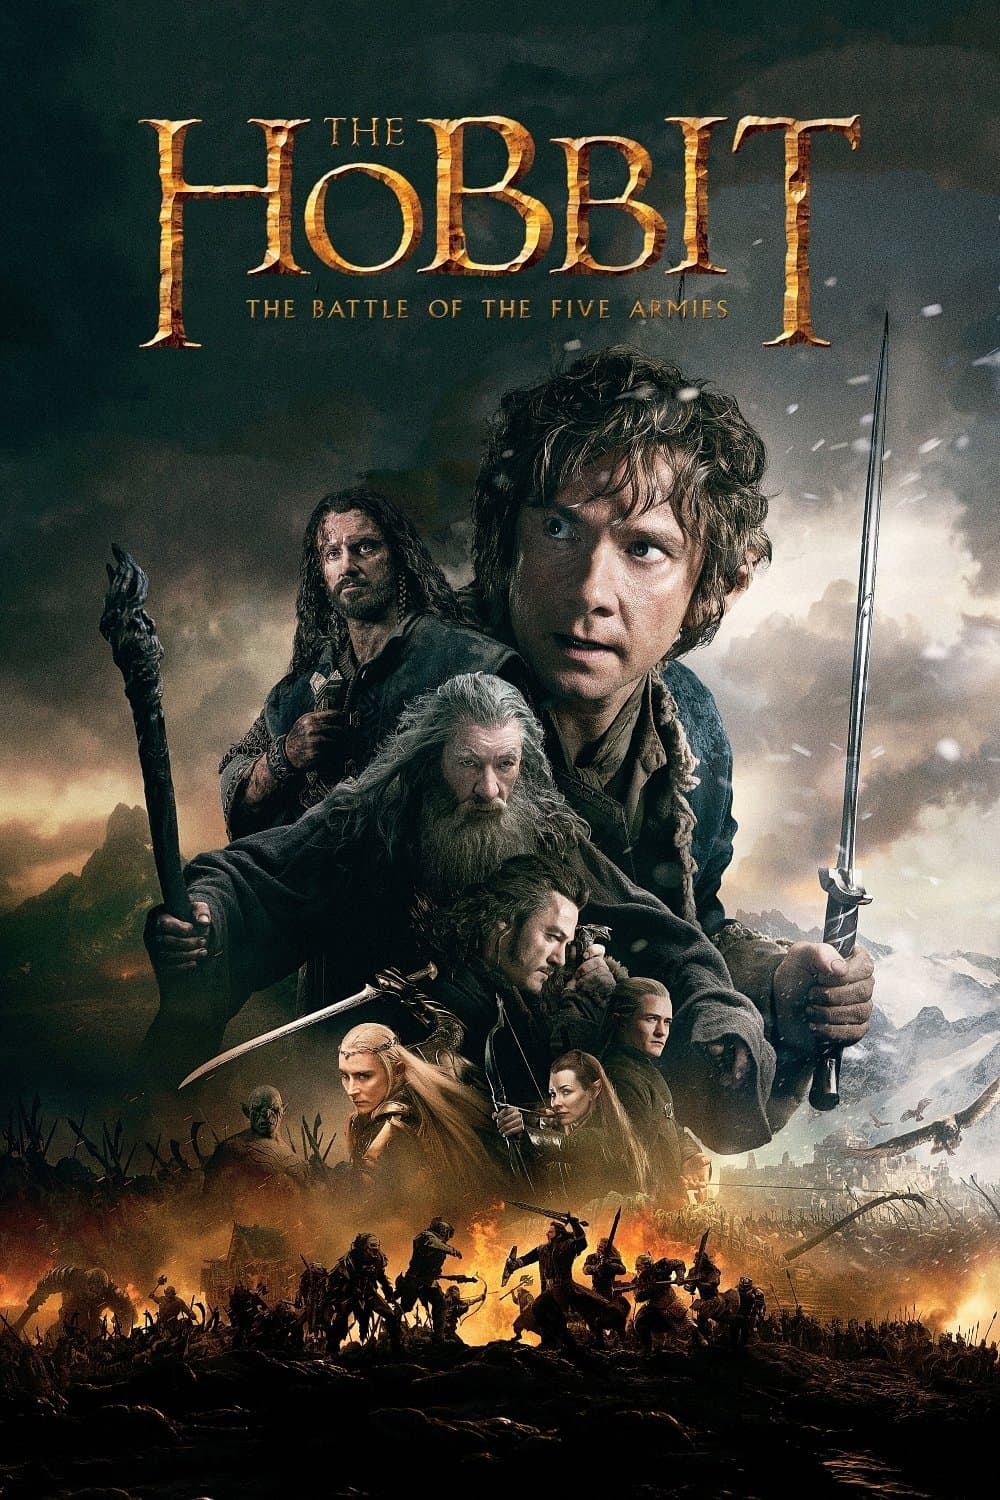 The Hobbit: The Battle of the Five Armies, 2014